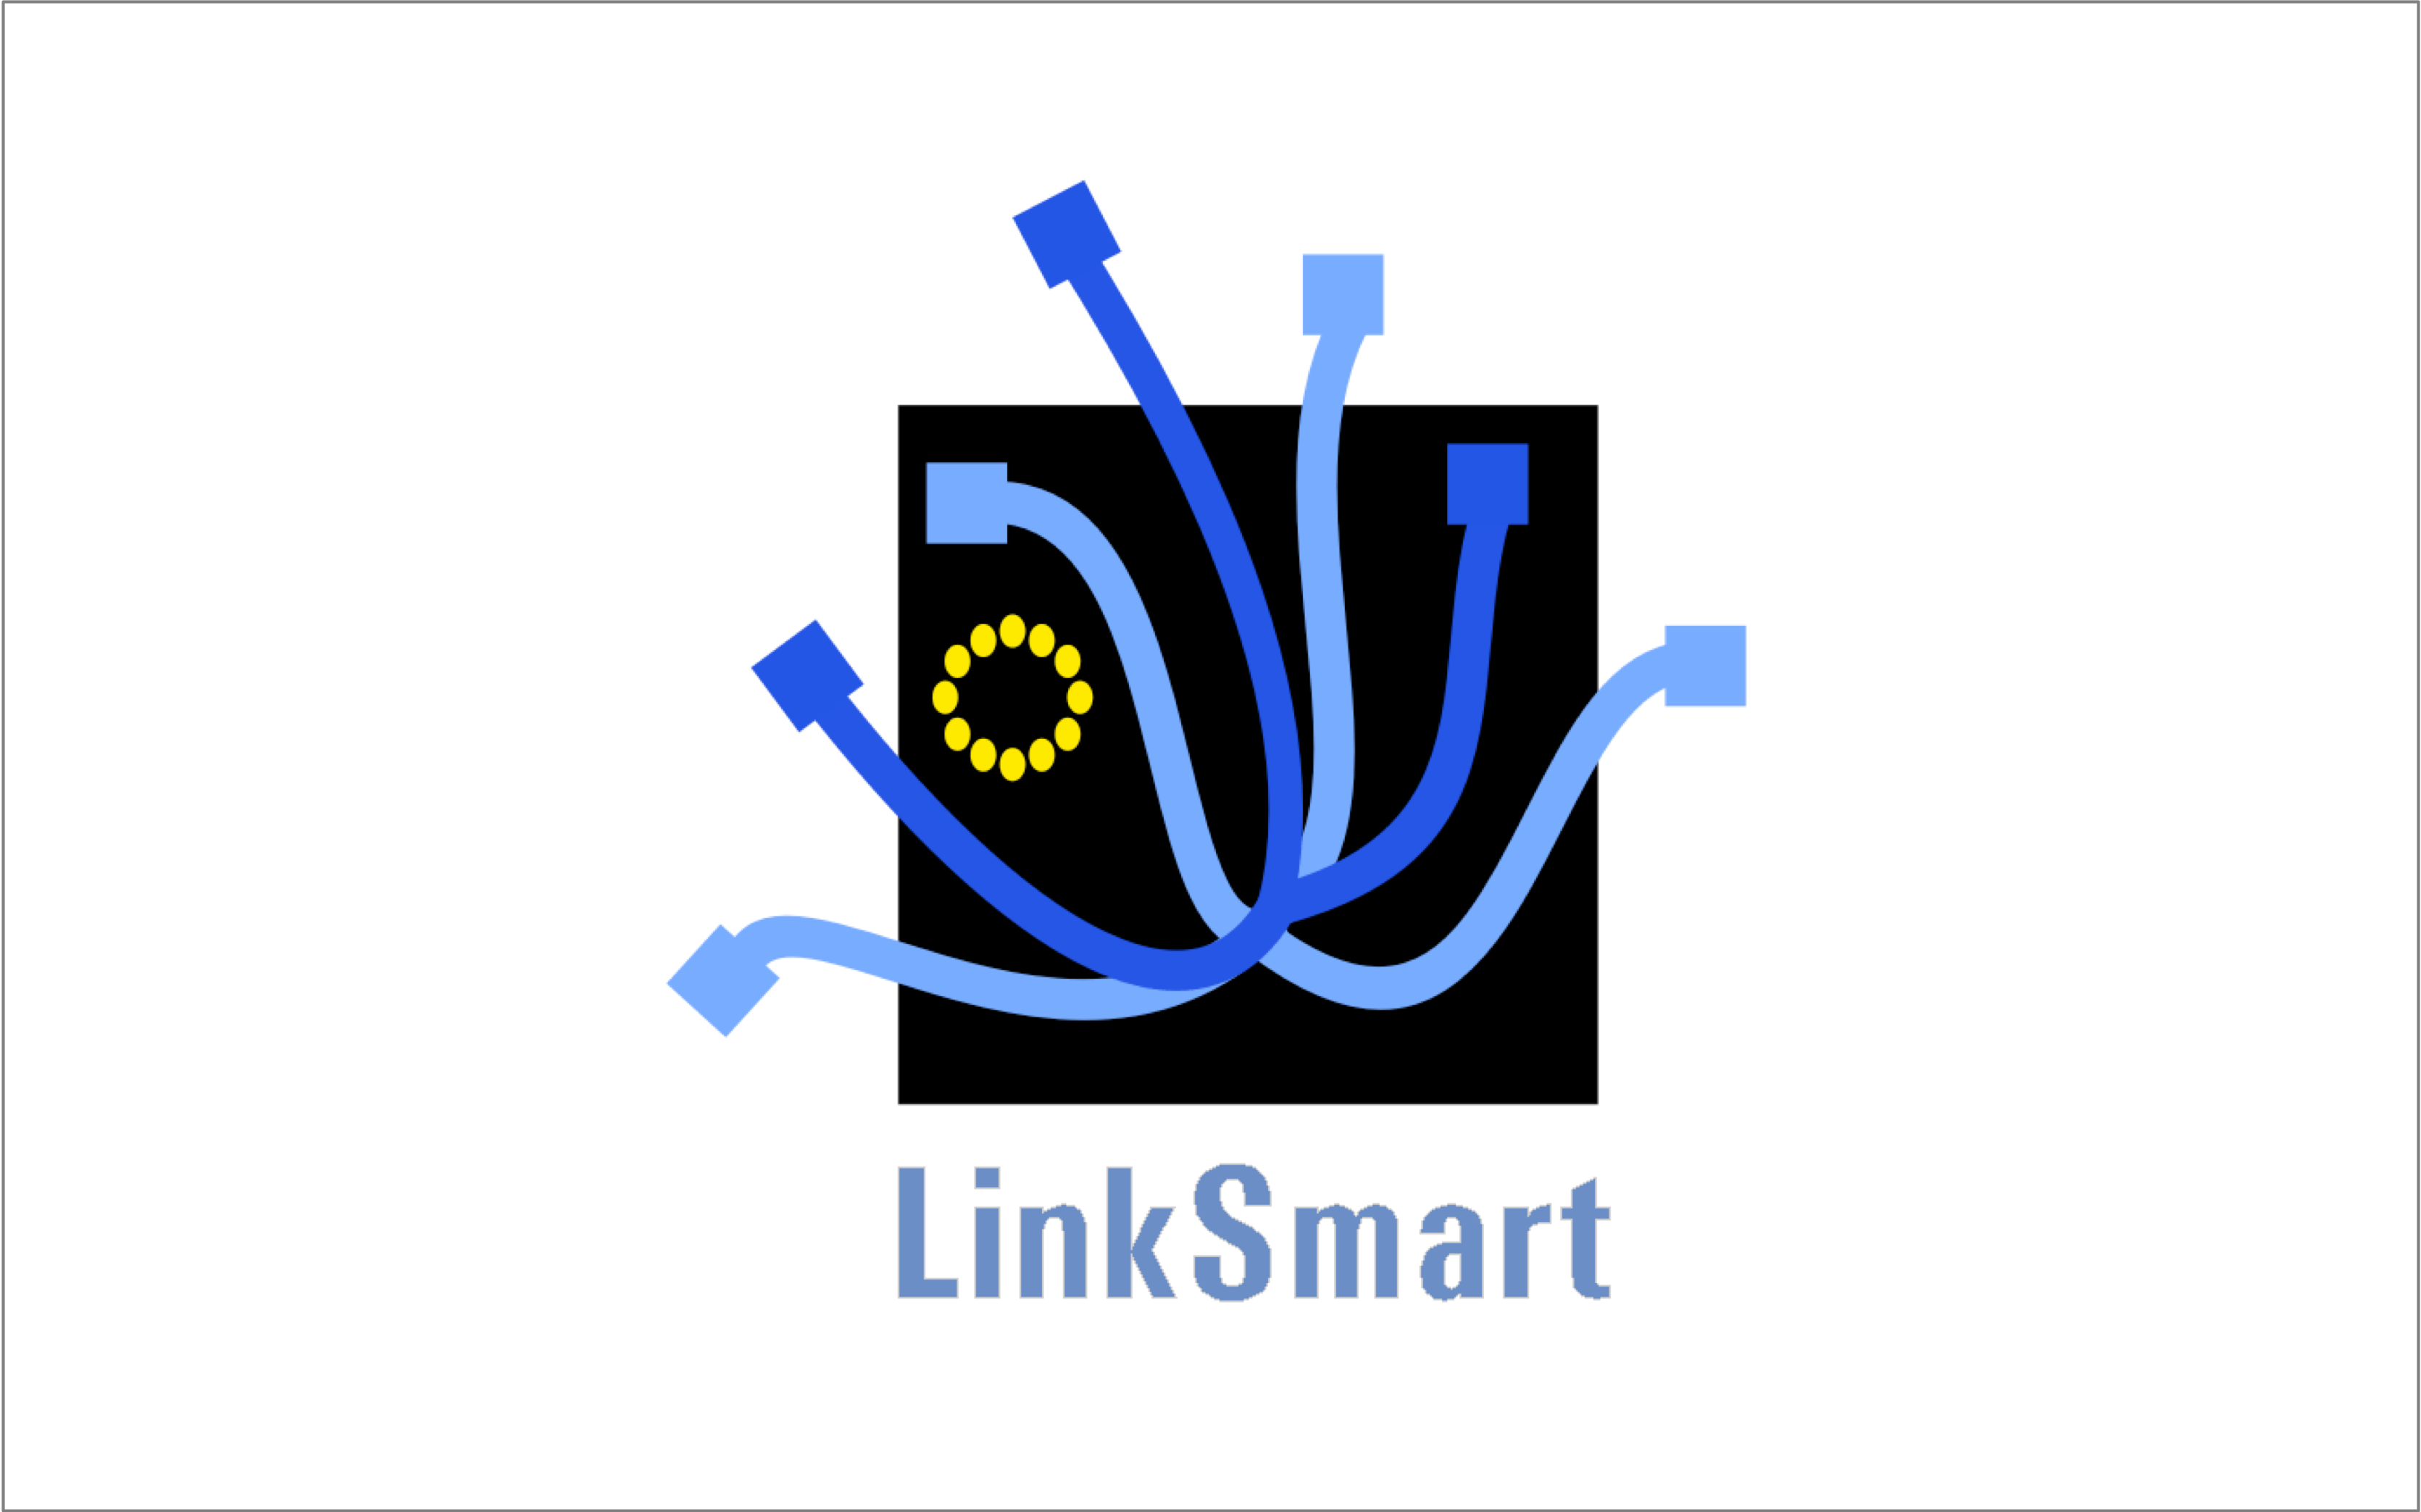 LinkSmart Project (2007-2010)